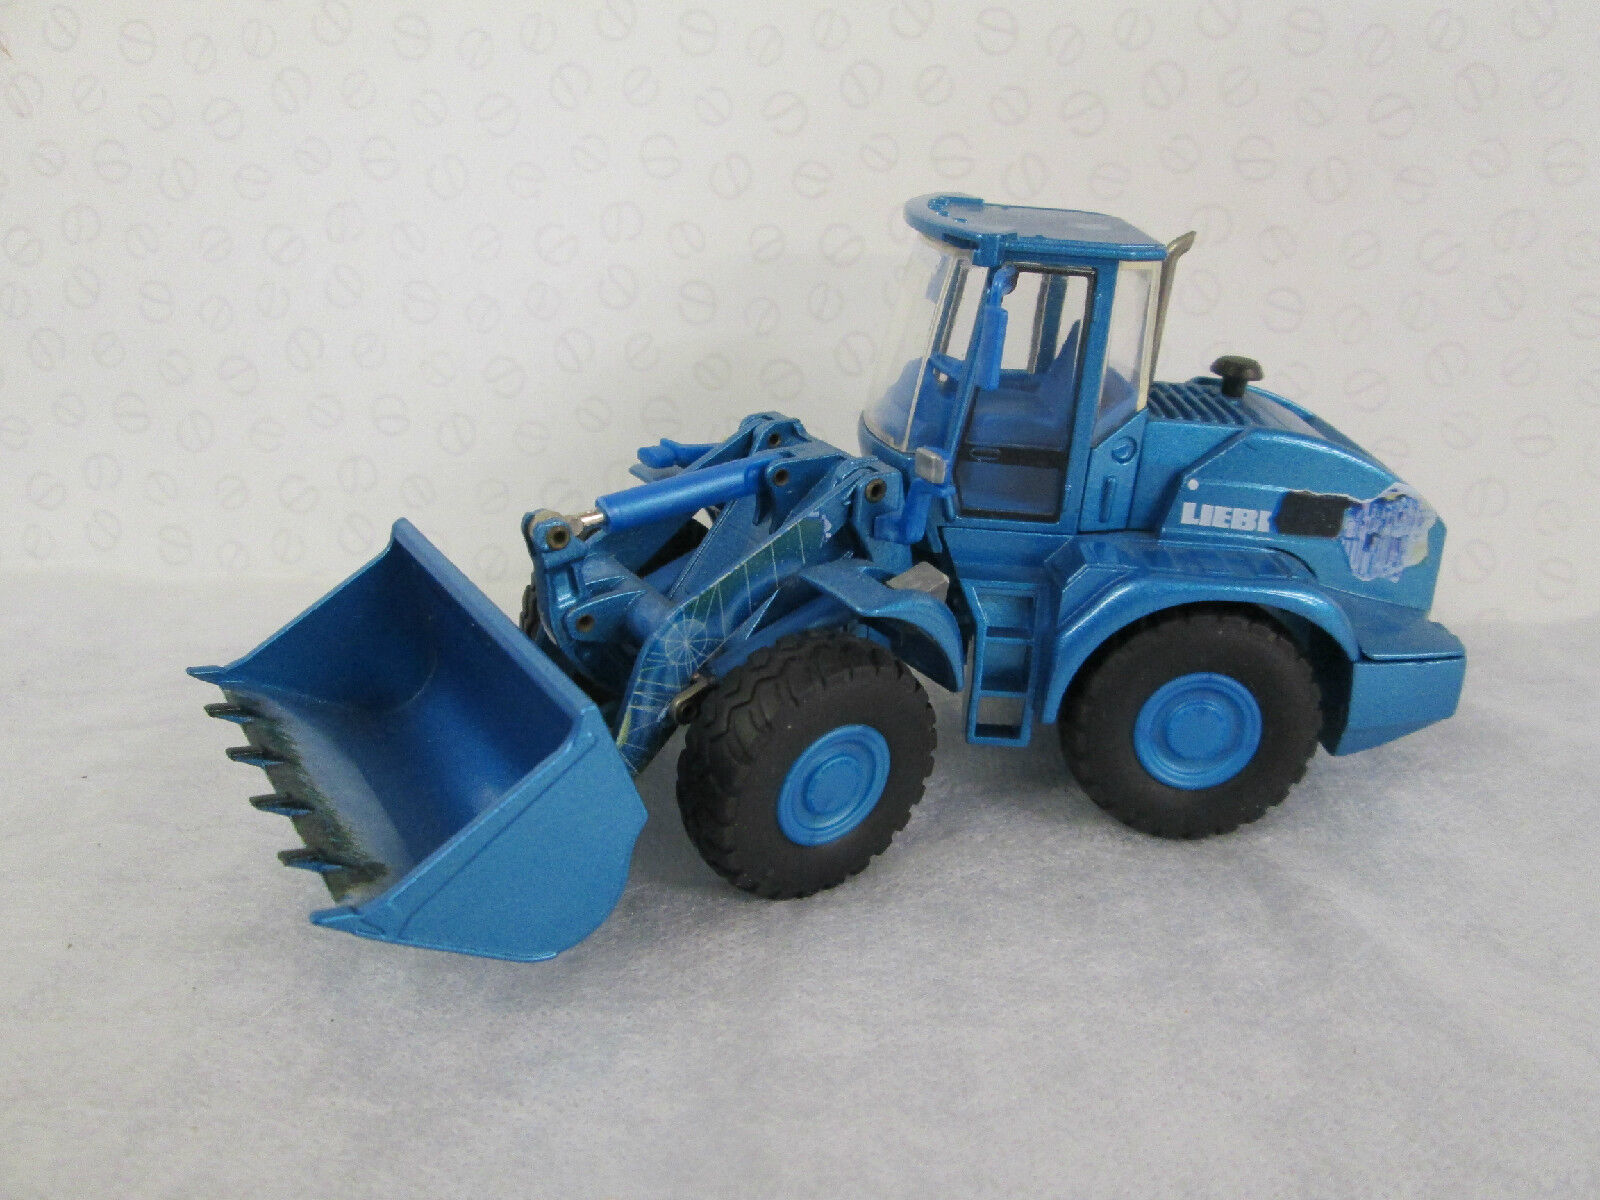 CONRAD. Liebherr Wheeled Loader L 538 in bluee 1 50 Scale. 2435 0